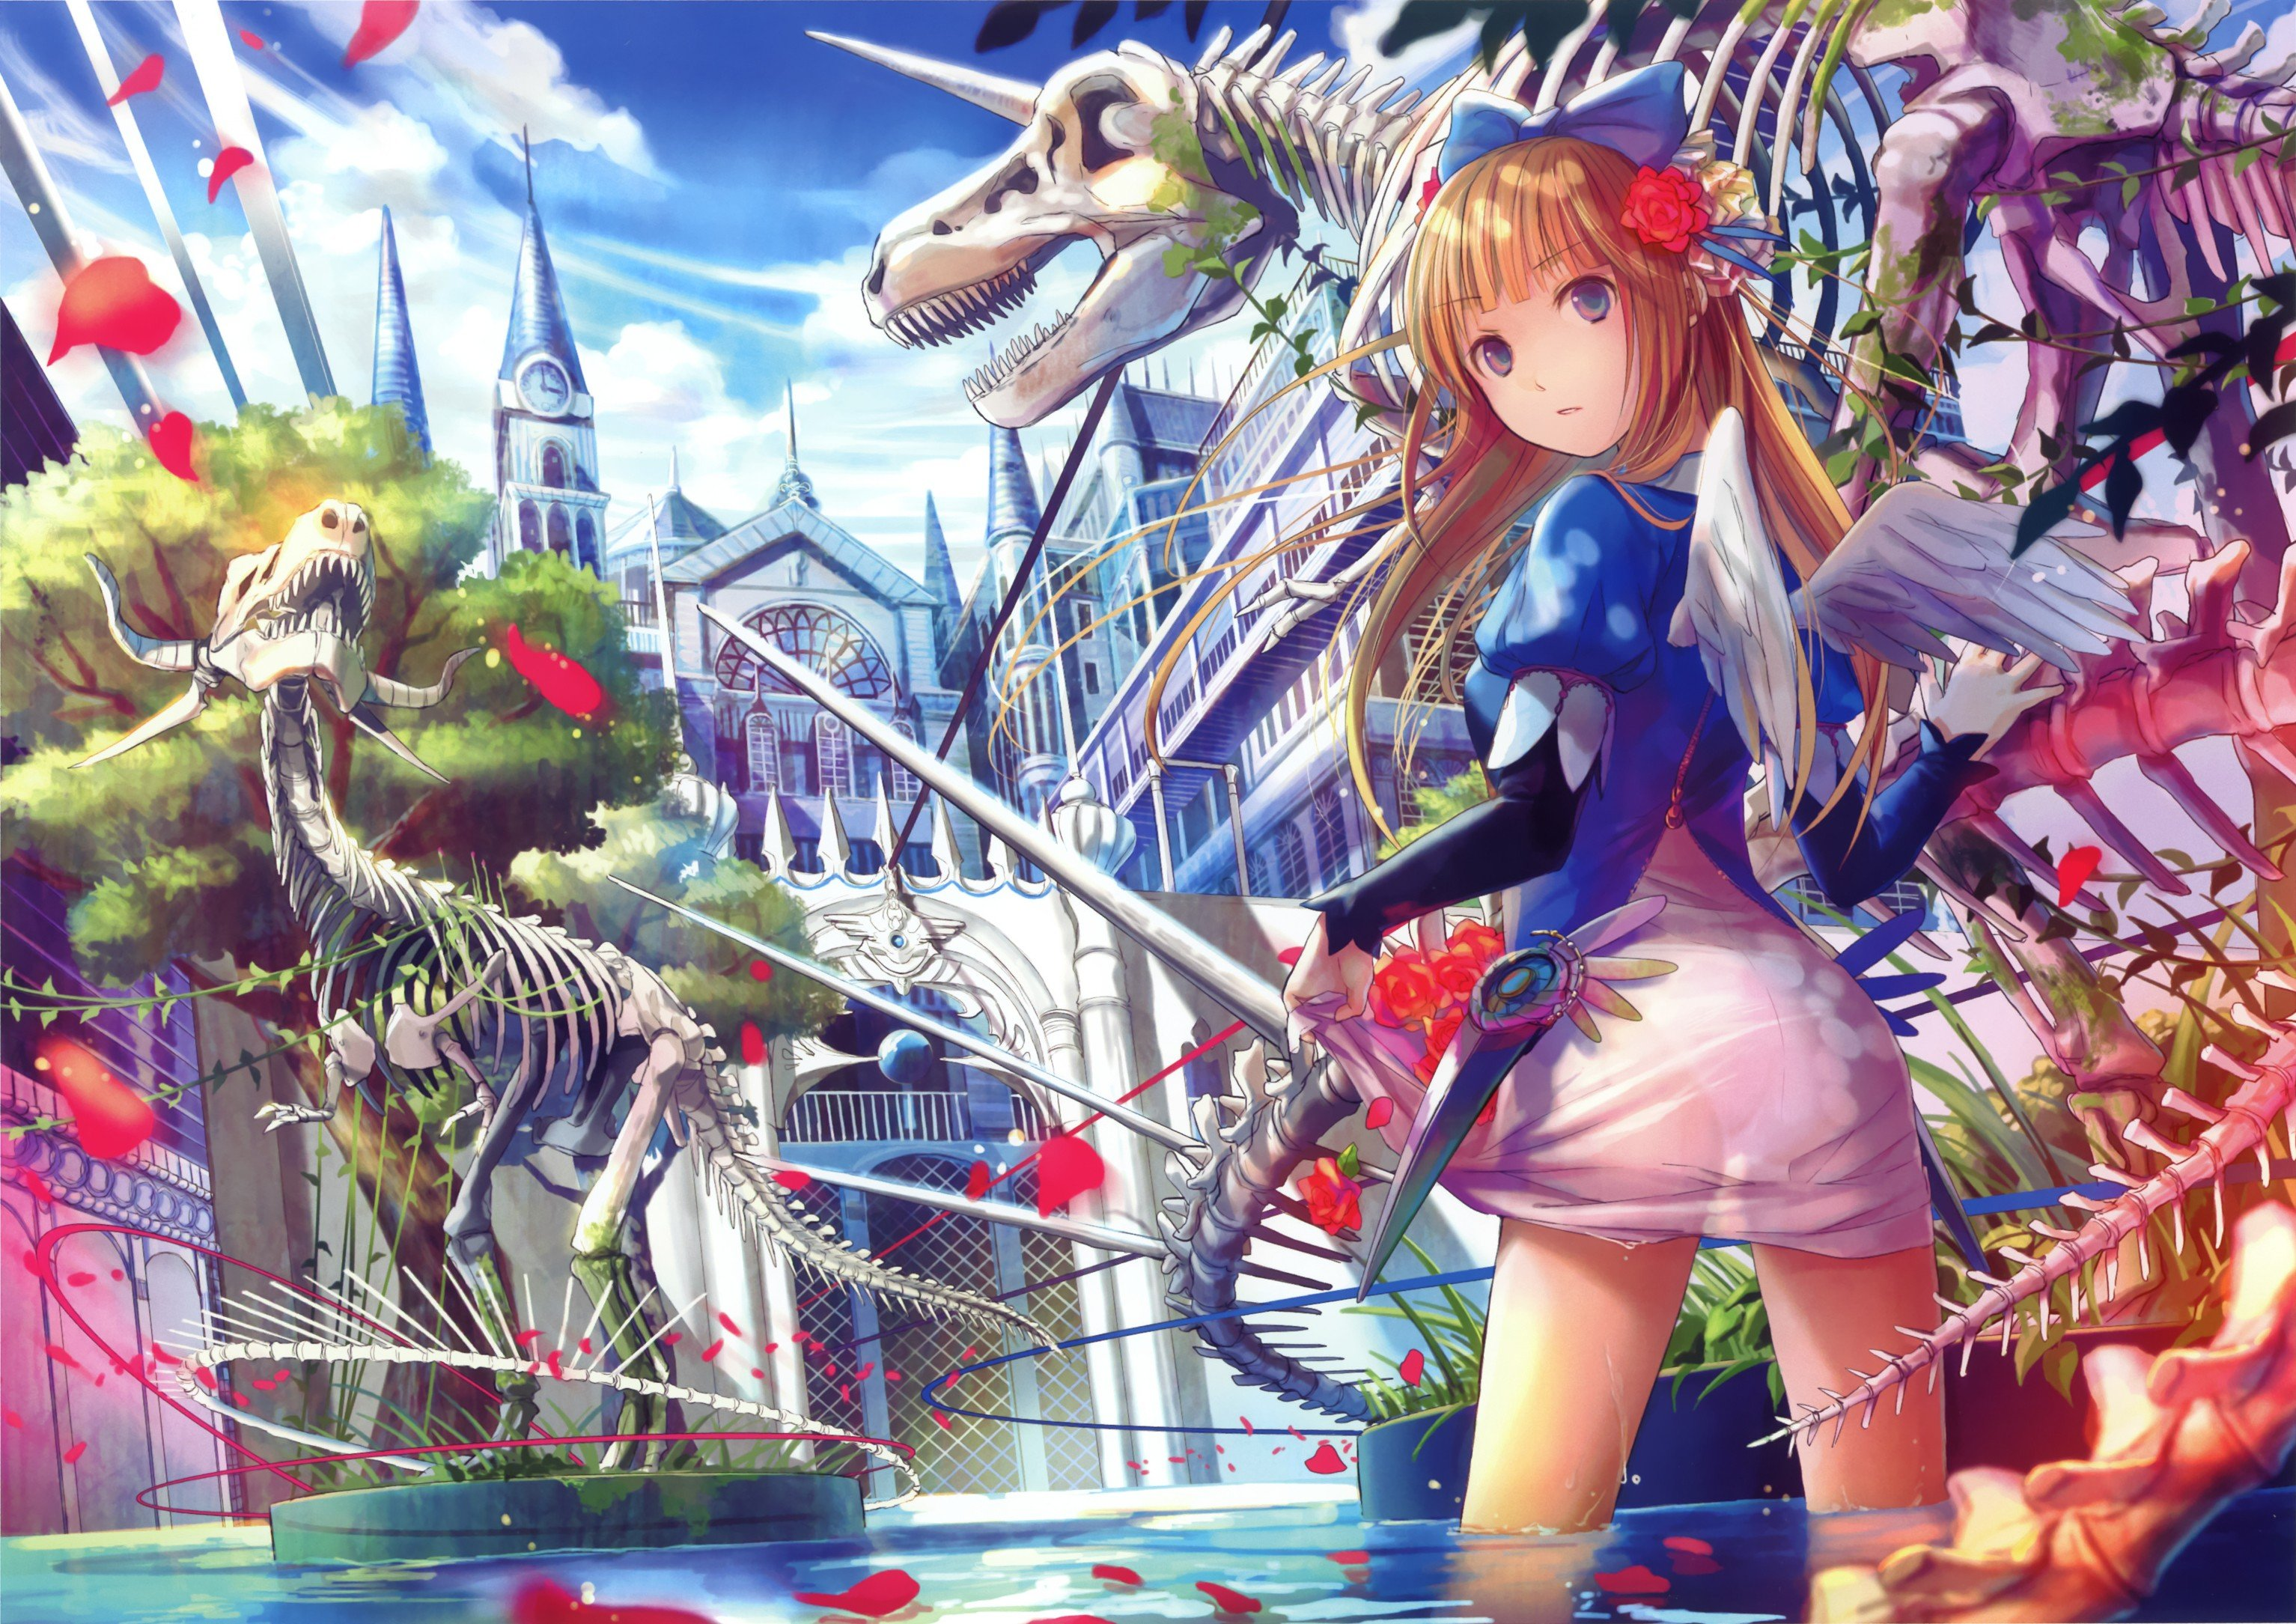 wings, Original characters, Water, Sky, Clouds, Petals, Dinosaurs, Anime, Anime girls, Trees Wallpaper